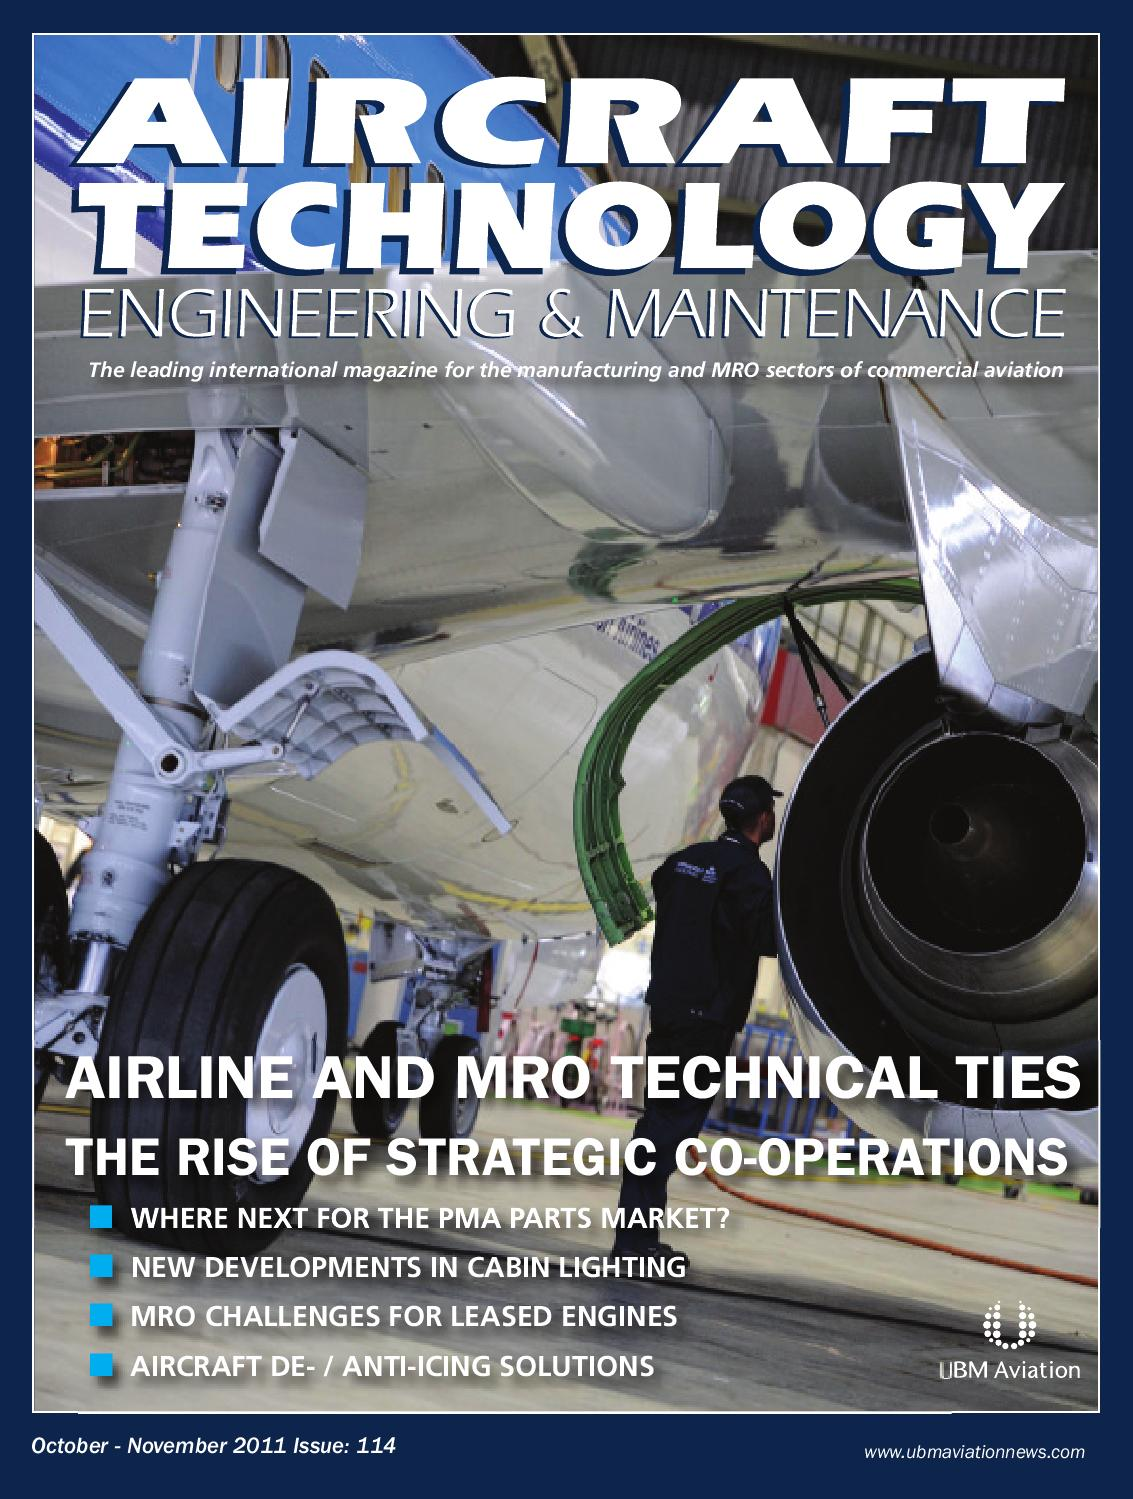 Aircraft Technology Engineering Maintenance Issue 114 By Ubm Aerospace Wire Harness Ties Aviation Publications Issuu